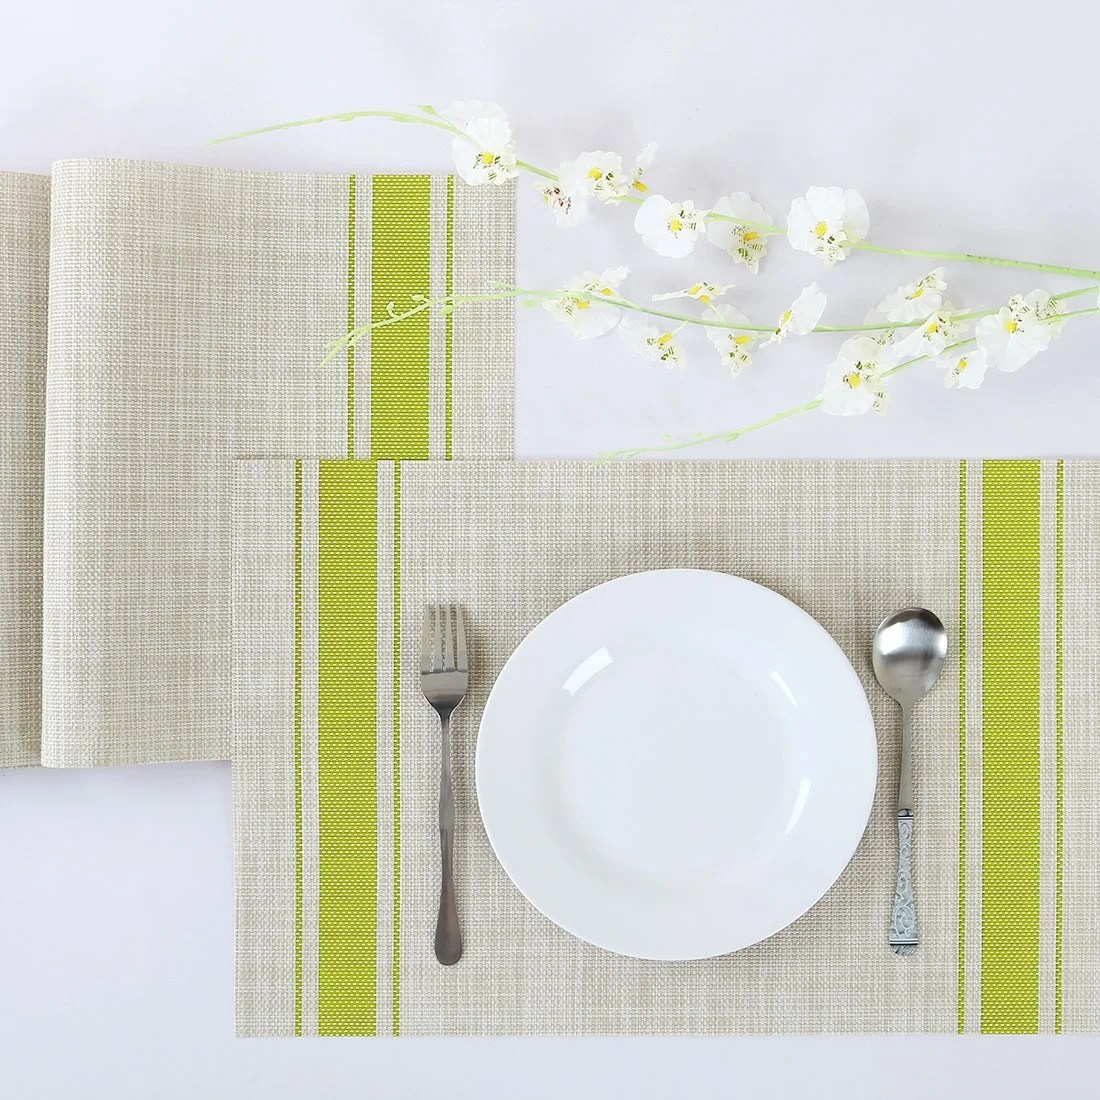 Pvc Placemats 4 6pcs Heat Insulated Placemats Anti Slip Washable Pvc Table Mats